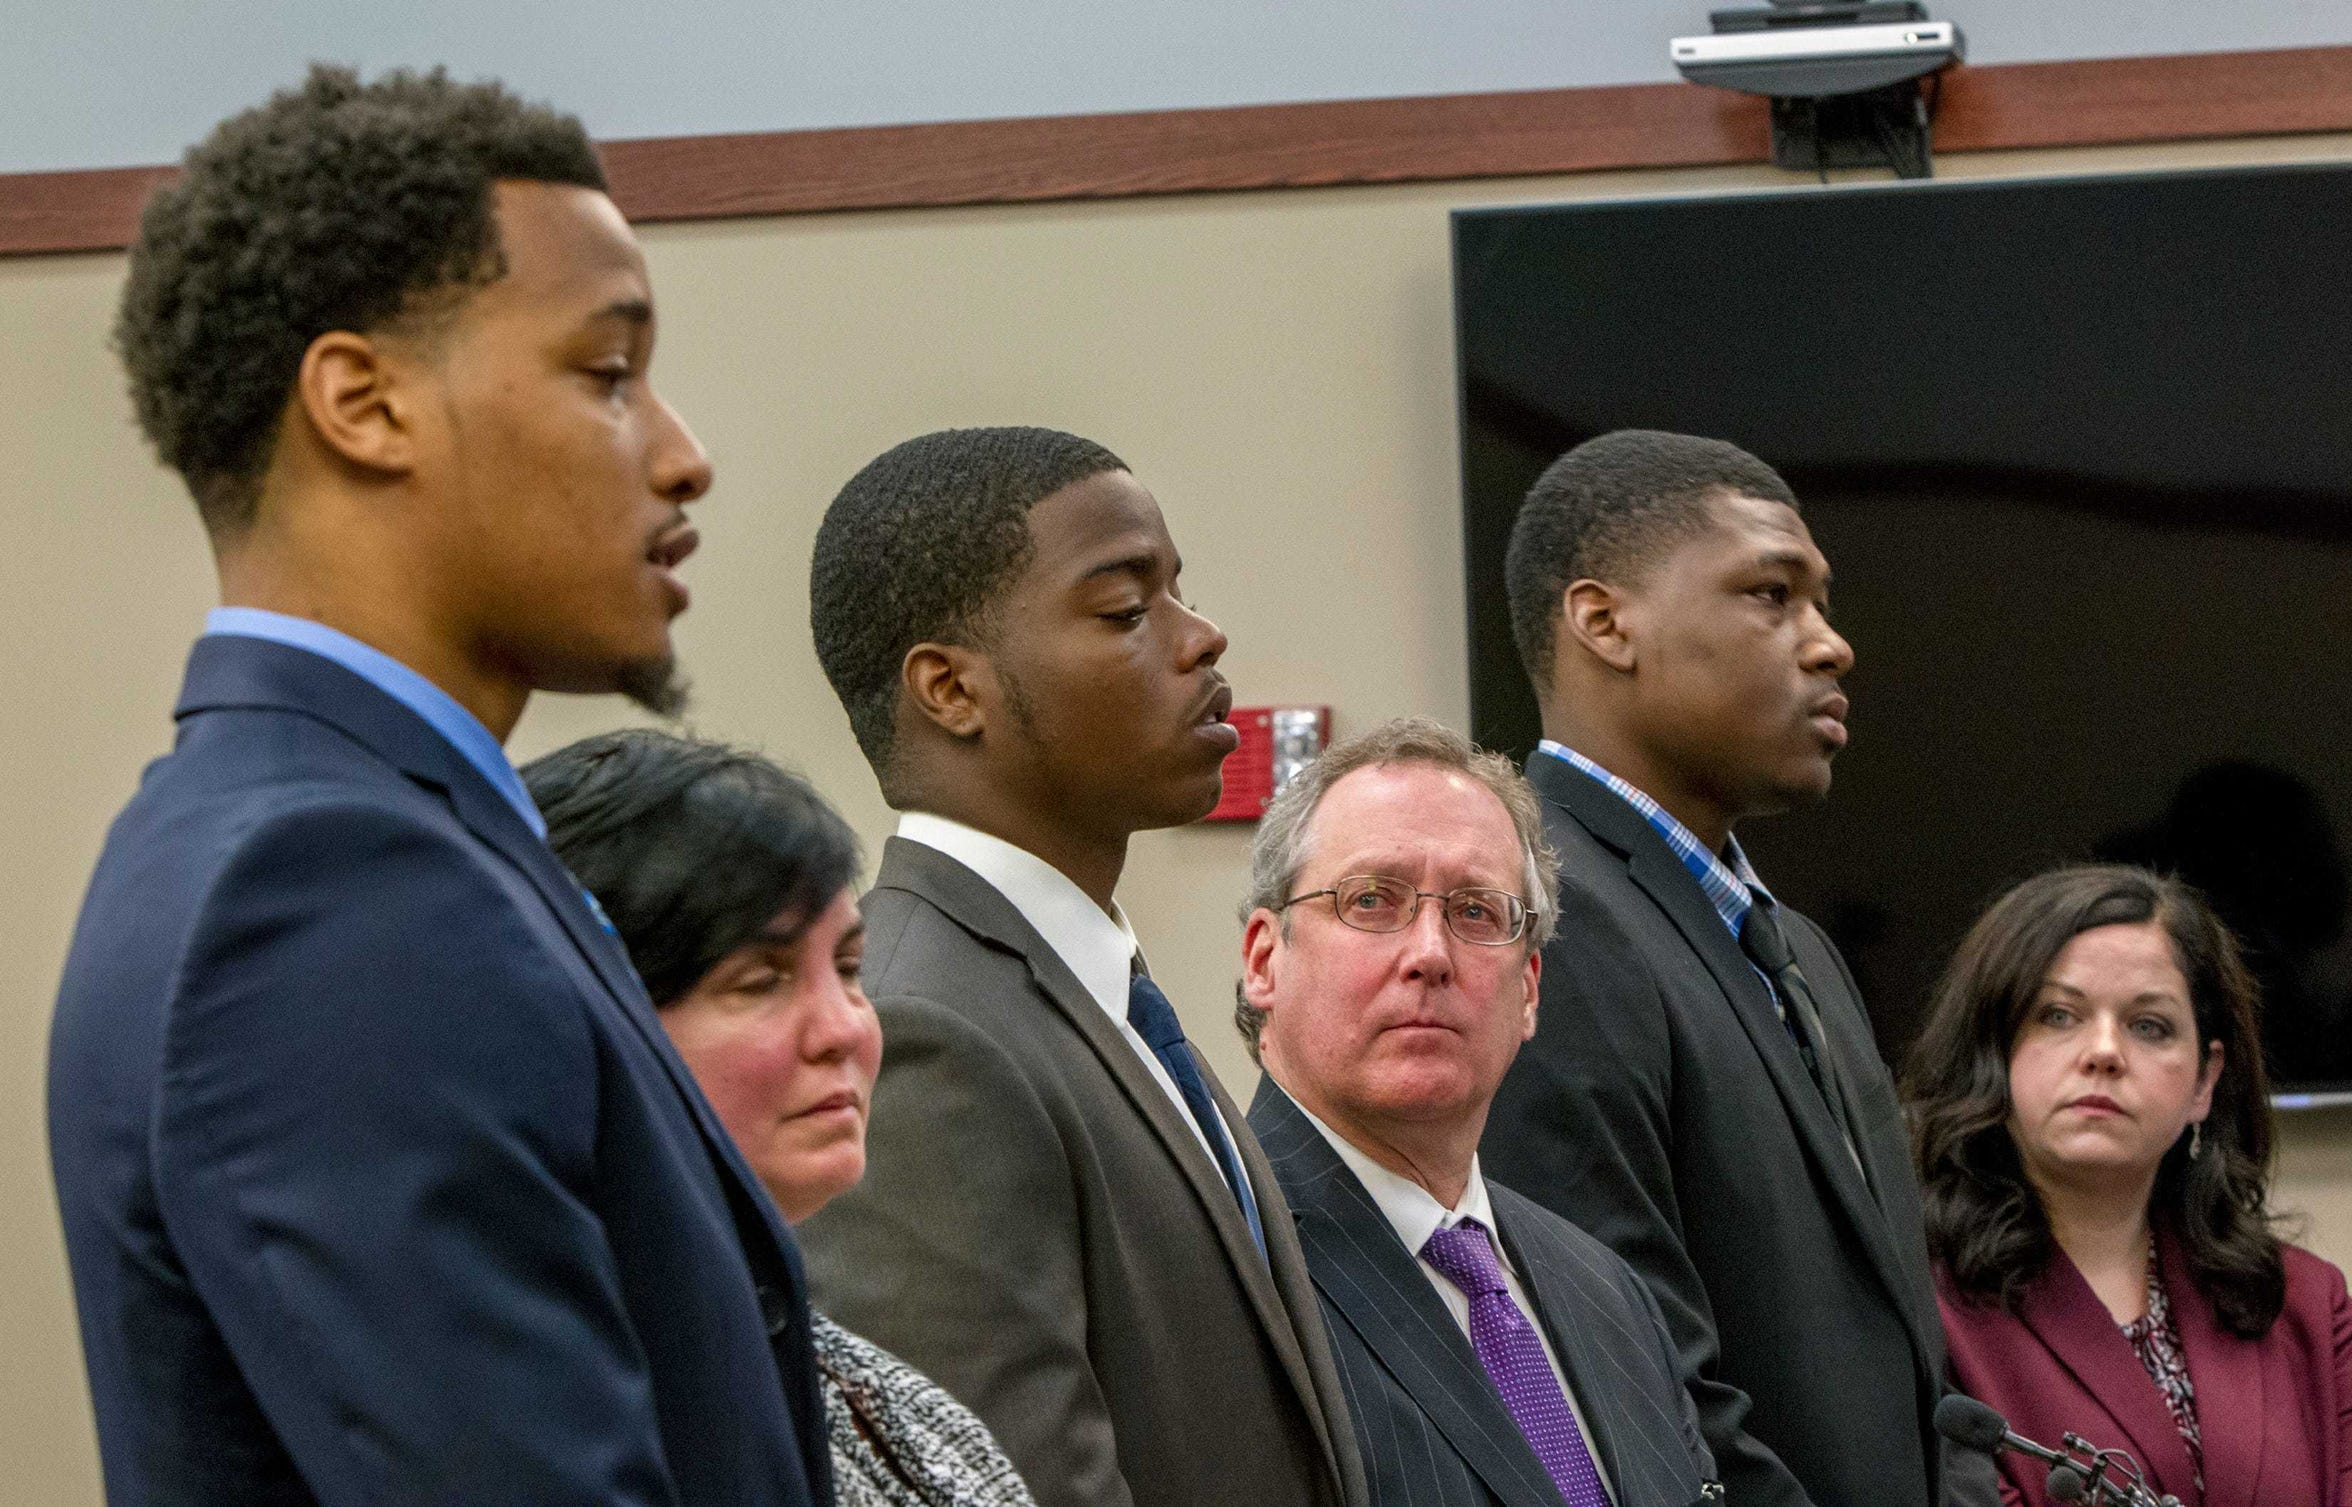 Former Michigan State football players, from left, Demetric Vance, Donnie Corley and Josh King appear for their sentencing in June 2018 at Ingham County 30th Circuit Court in Lansing.